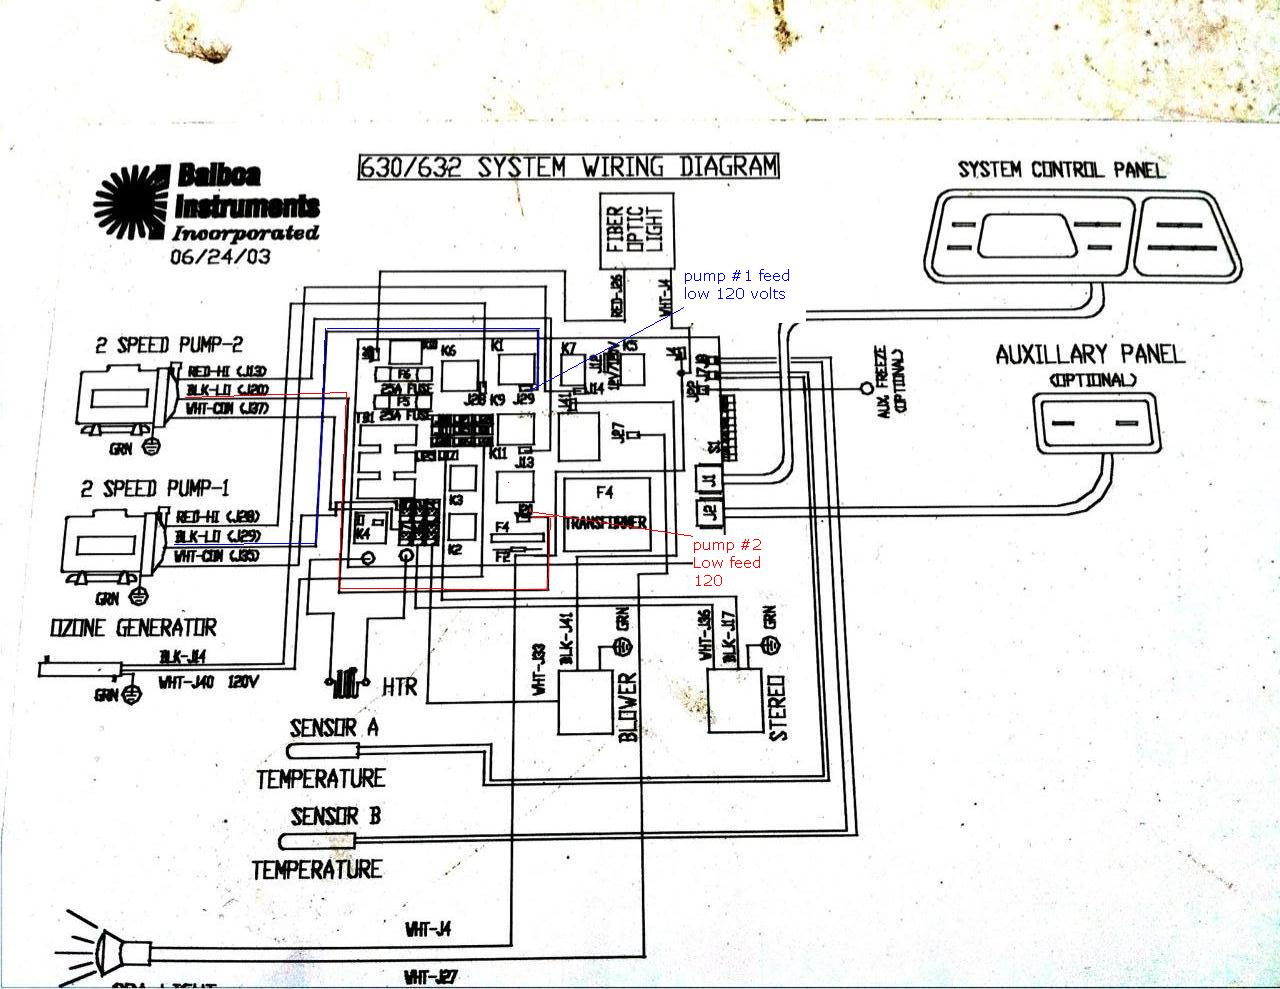 Wiring Diagram For Beachcomber Hot Tub : I have a spas model dlx it has two motors and the